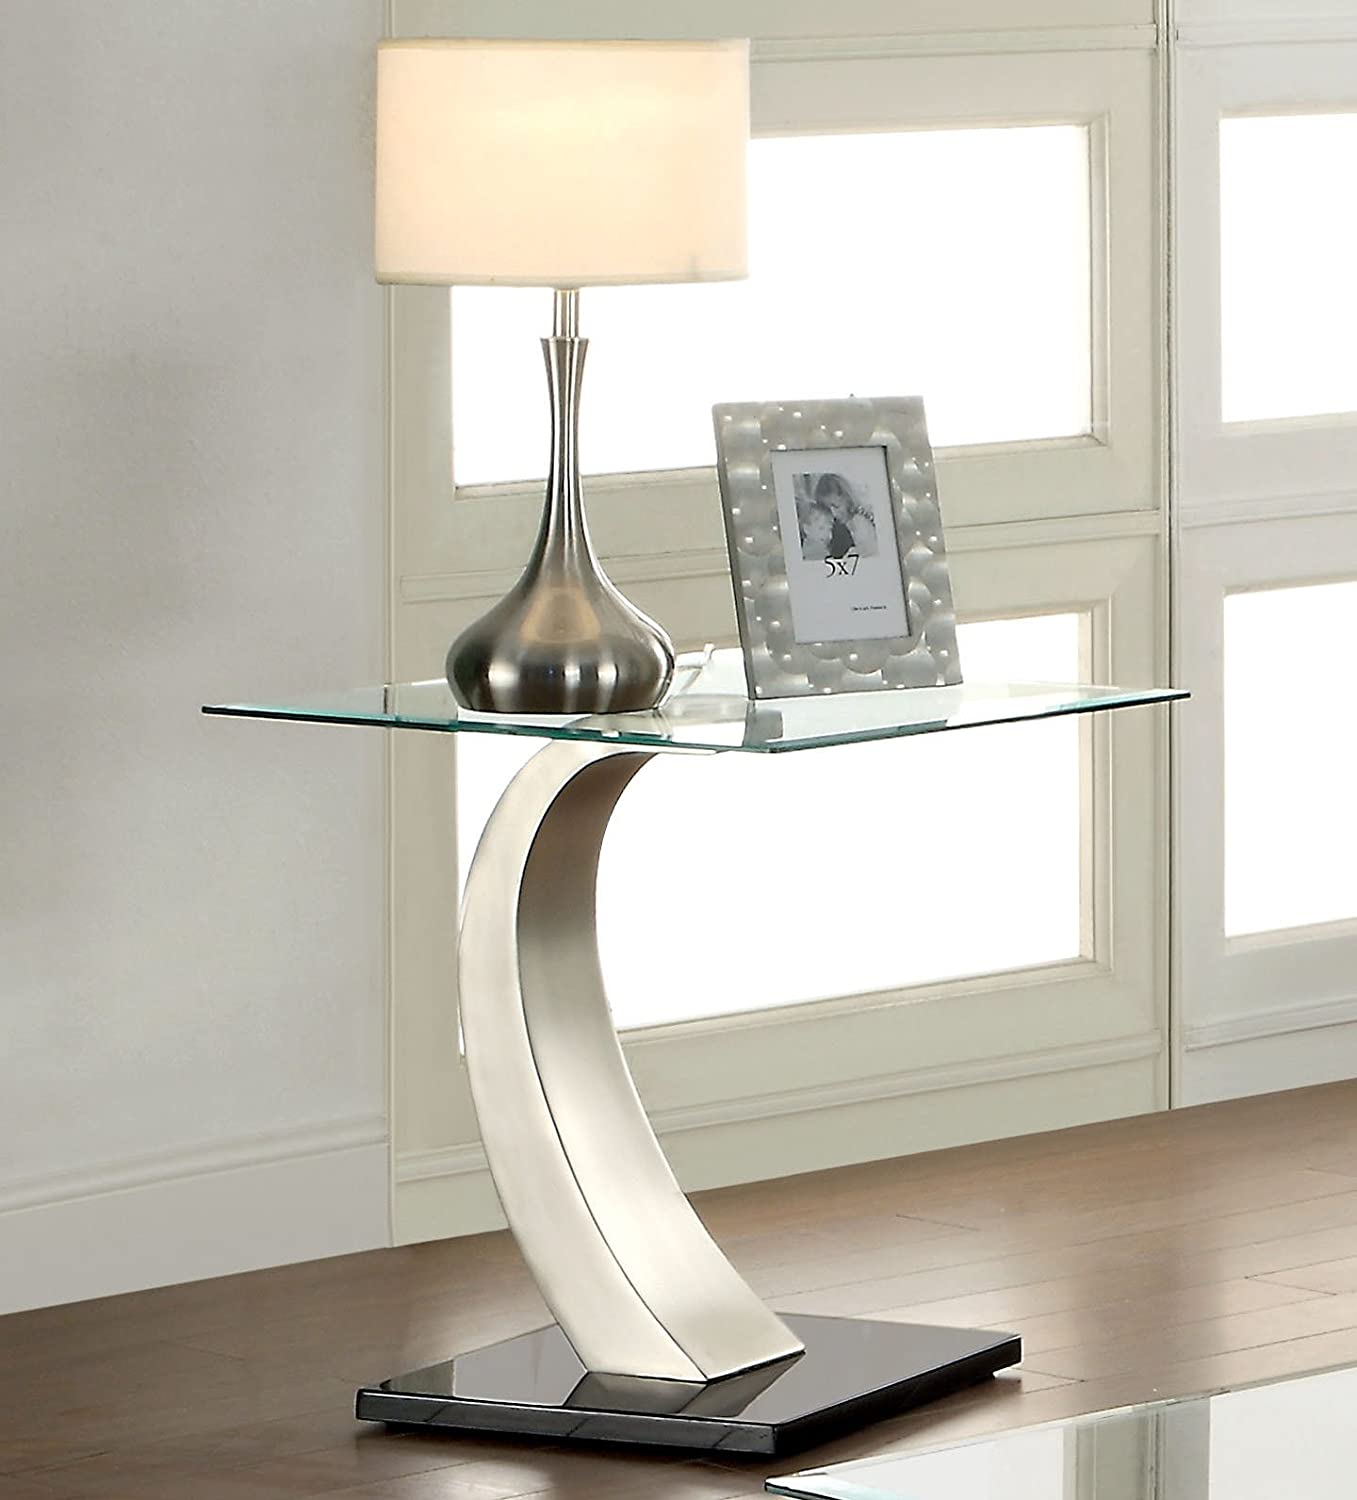 Furniture of America Kassius Modern End Table, Metallic Finish